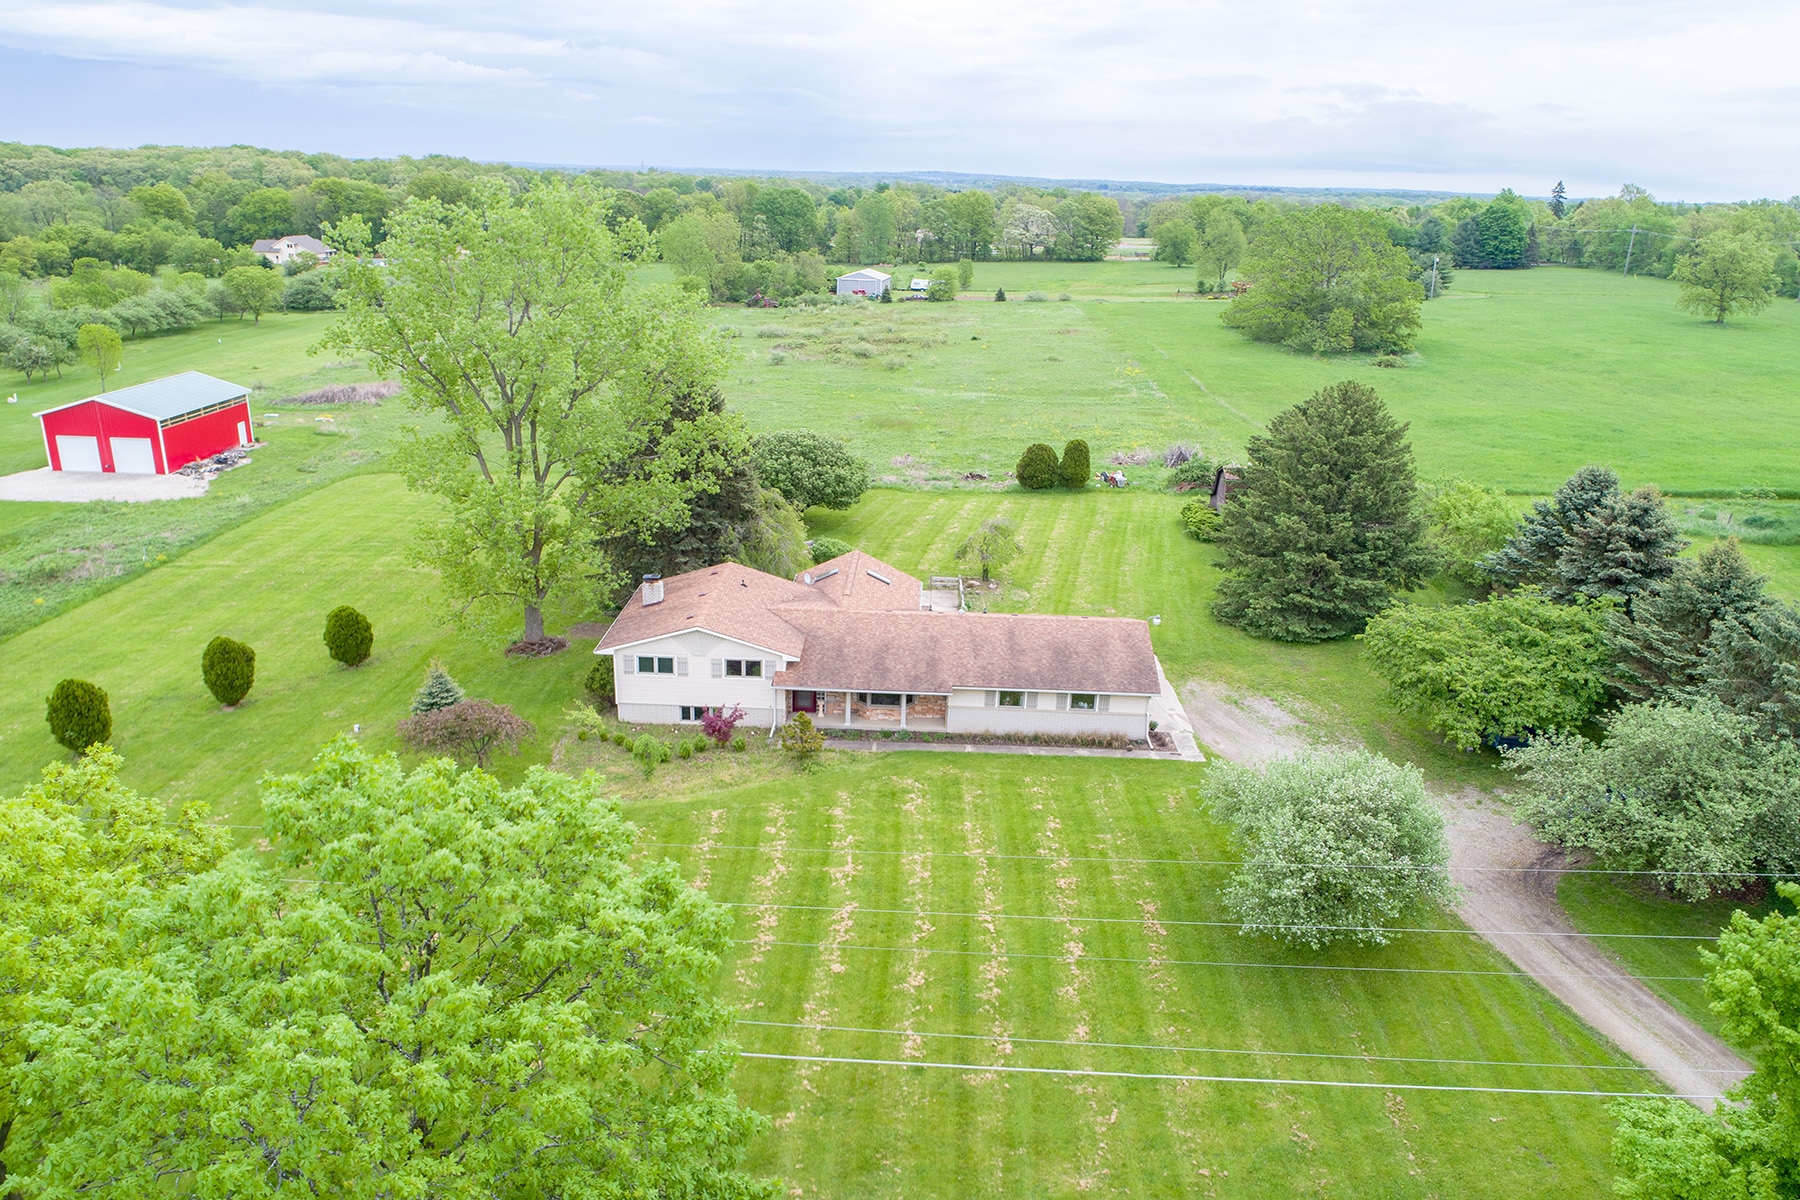 Single Family Homes for Sale at Rose Township 8950 Hickory Ridge Road Holly, Michigan 48442 United States